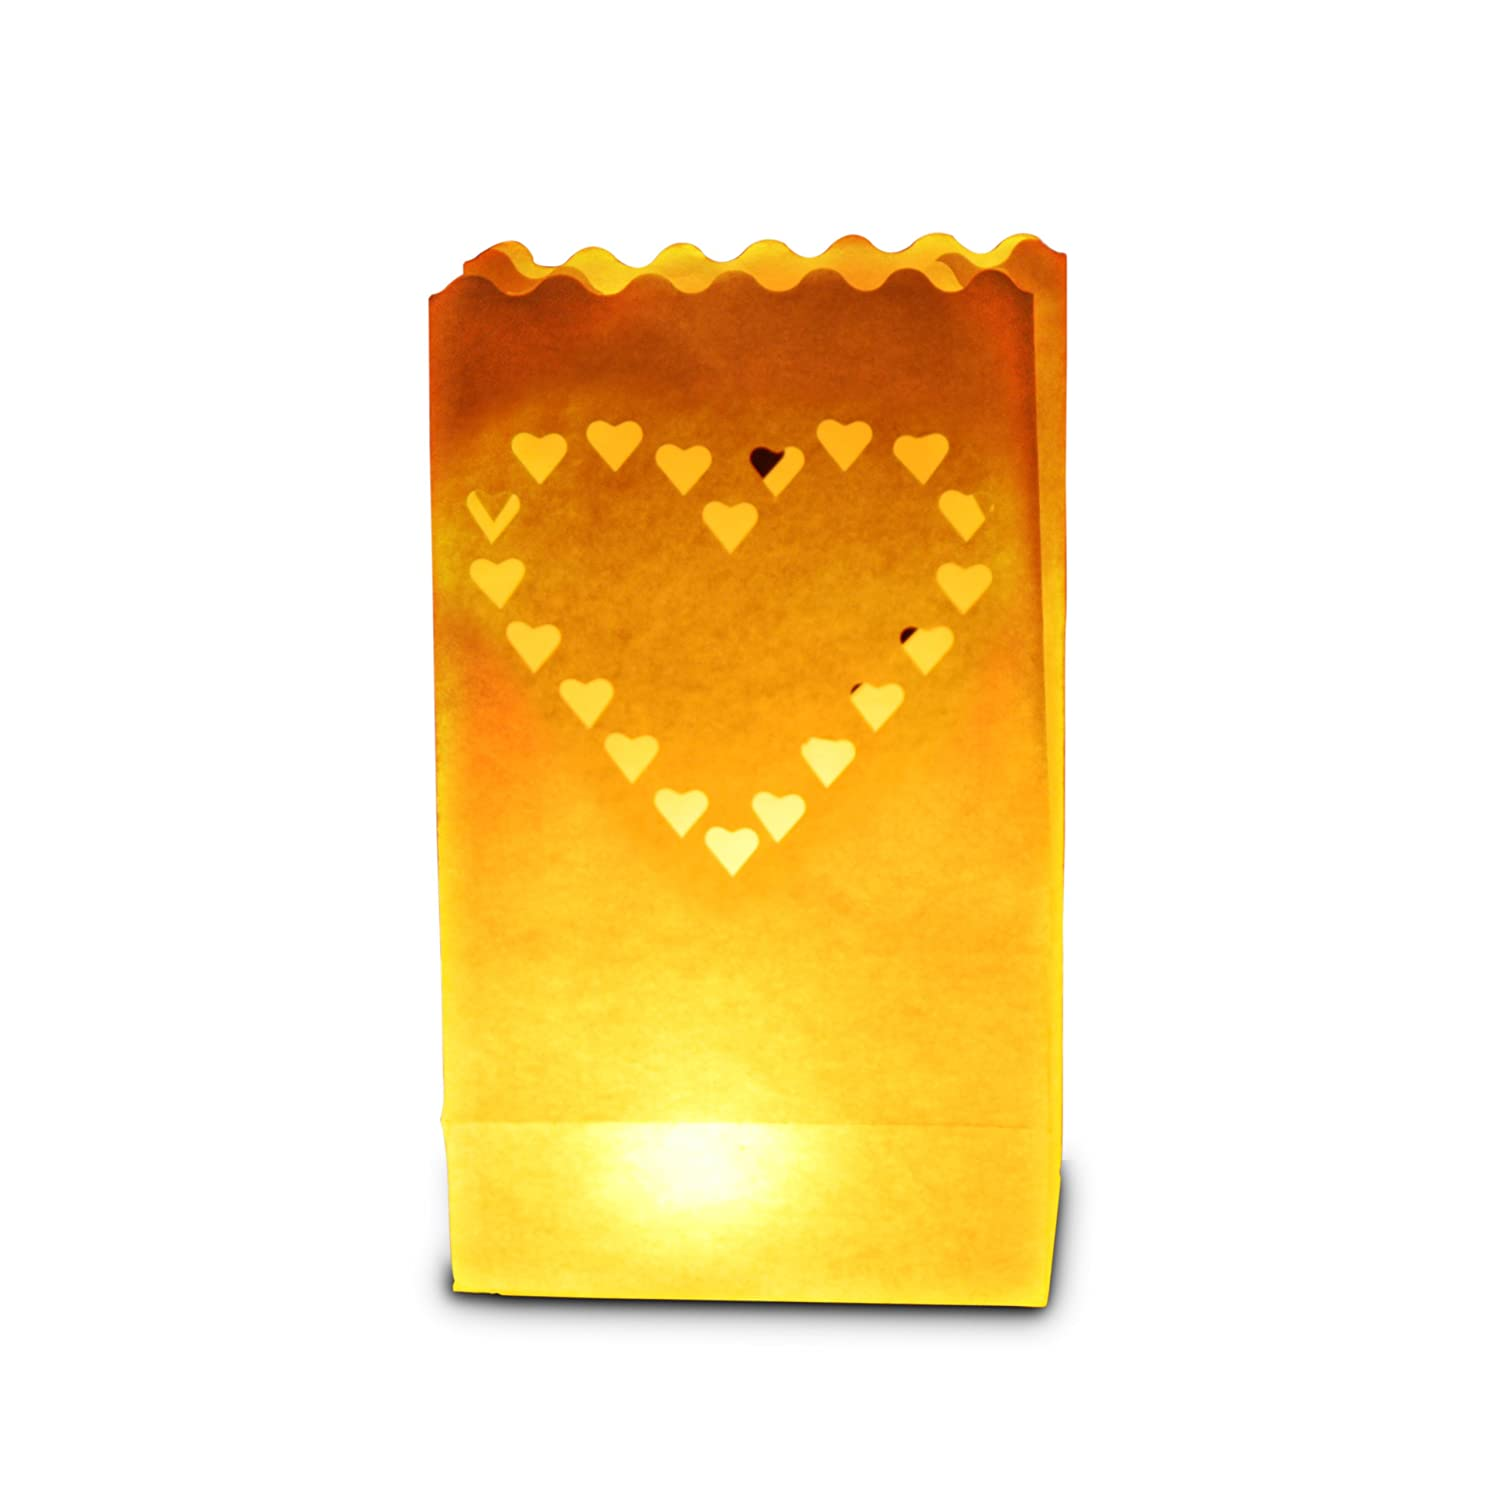 Candle Bags UK Large Heart Design Candle Luminary Bags (Pack of 5) 5P002